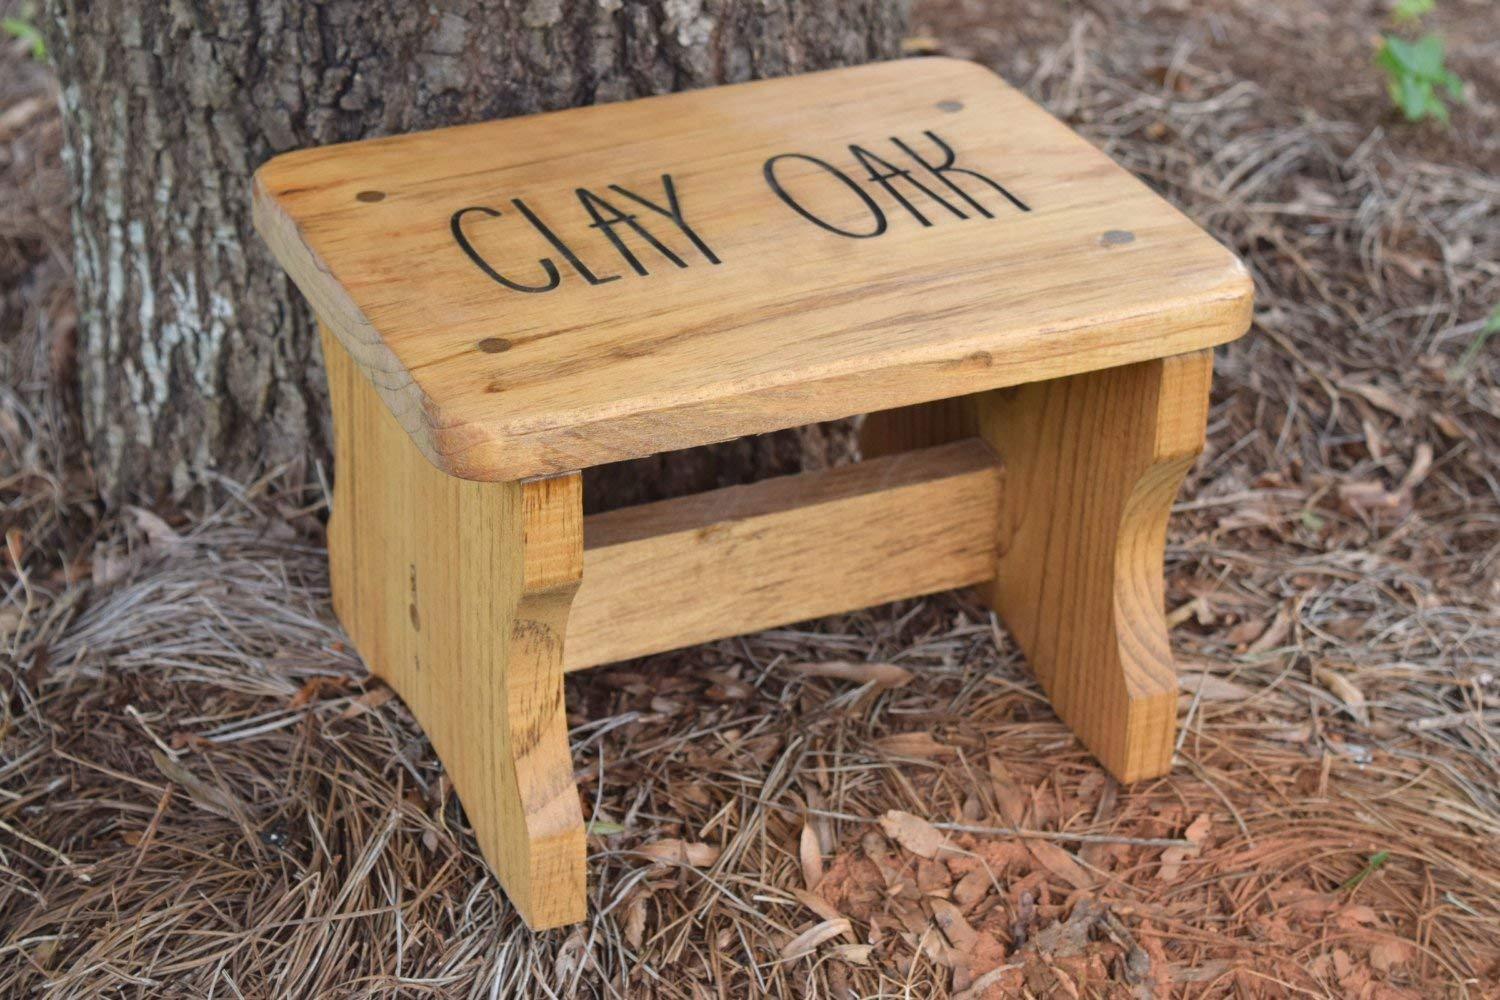 Excellent Personalized Kids Stepping Stool Kids Step Stool Personalized Gift For Kids Step Stool Wood Stool Pdpeps Interior Chair Design Pdpepsorg